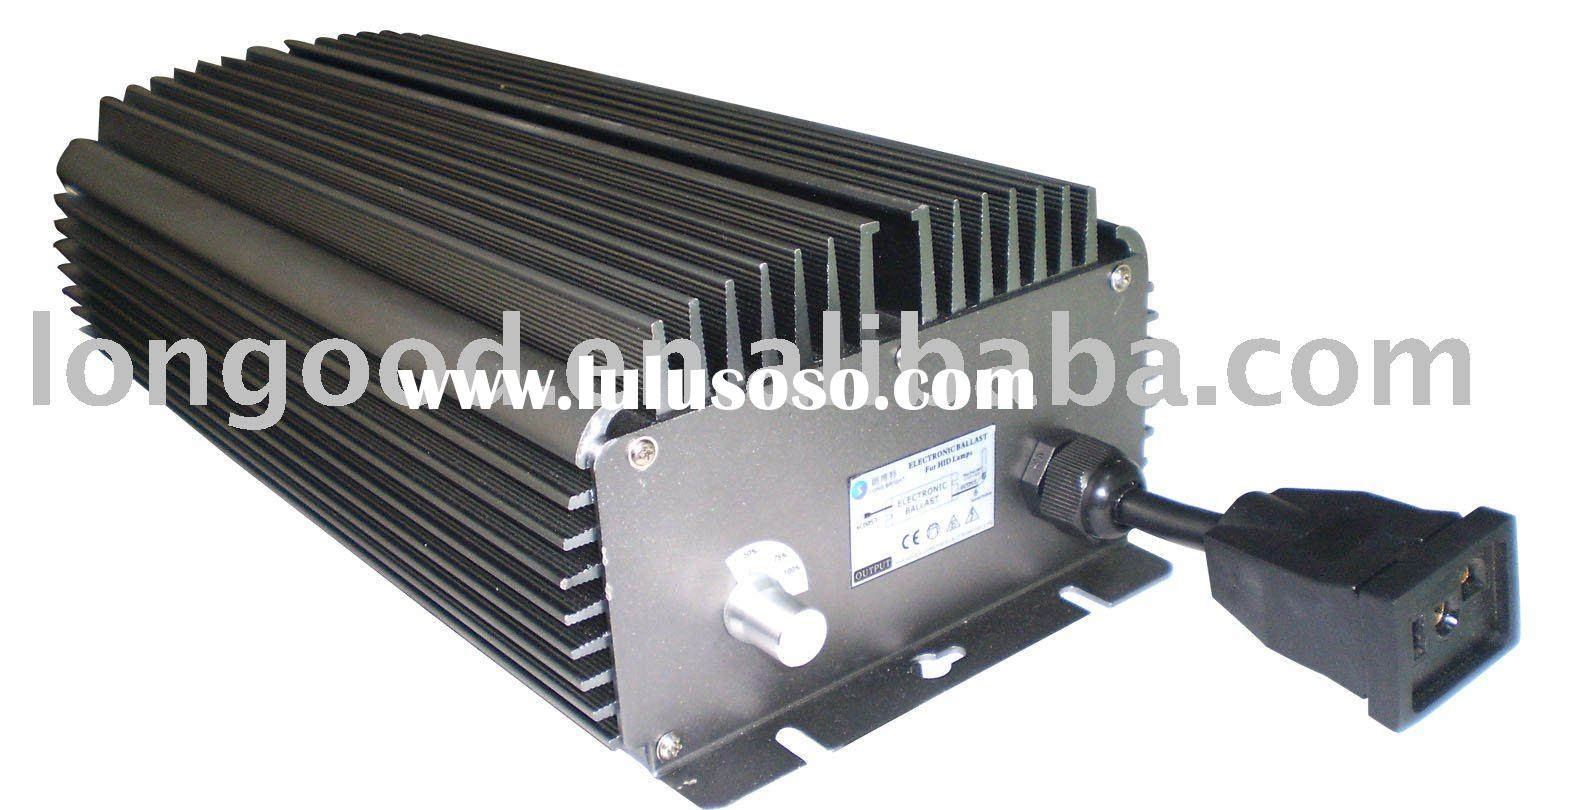 HPS/MH Electronic Dimmable Ballast for 1000W by 3-step switch